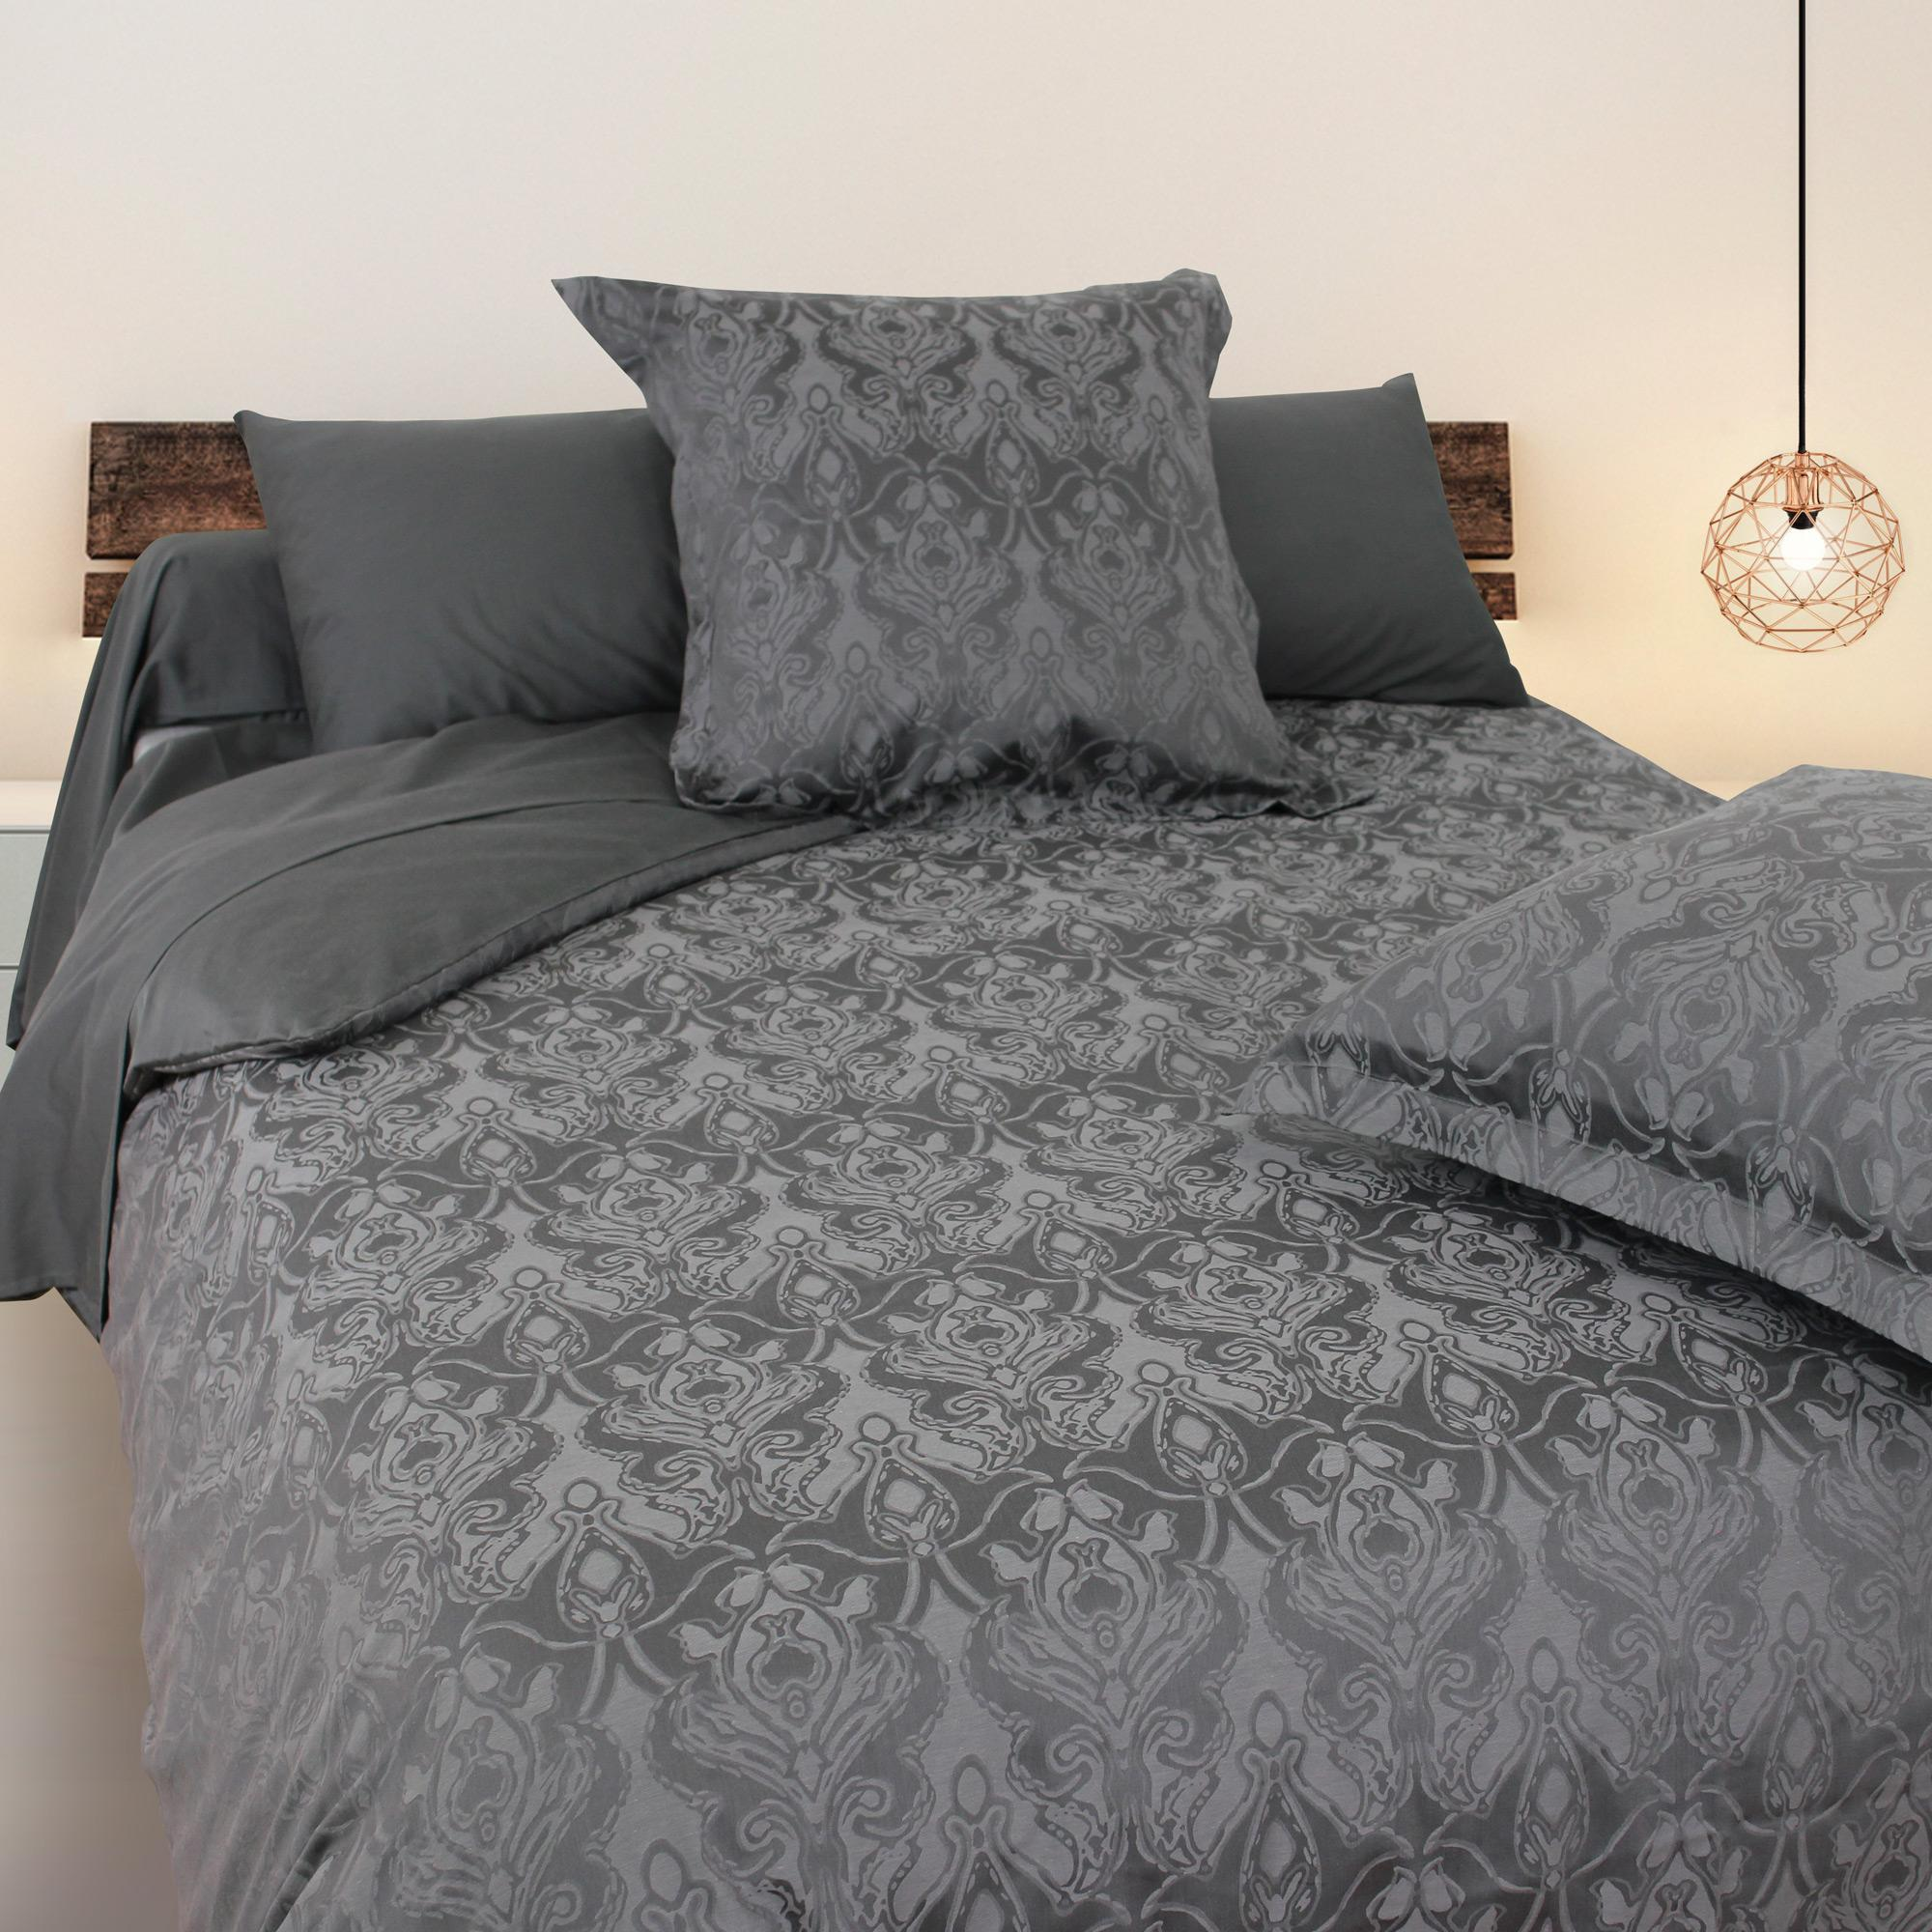 housse de couette 260x240 satin de coton vosges gris fonc ebay. Black Bedroom Furniture Sets. Home Design Ideas